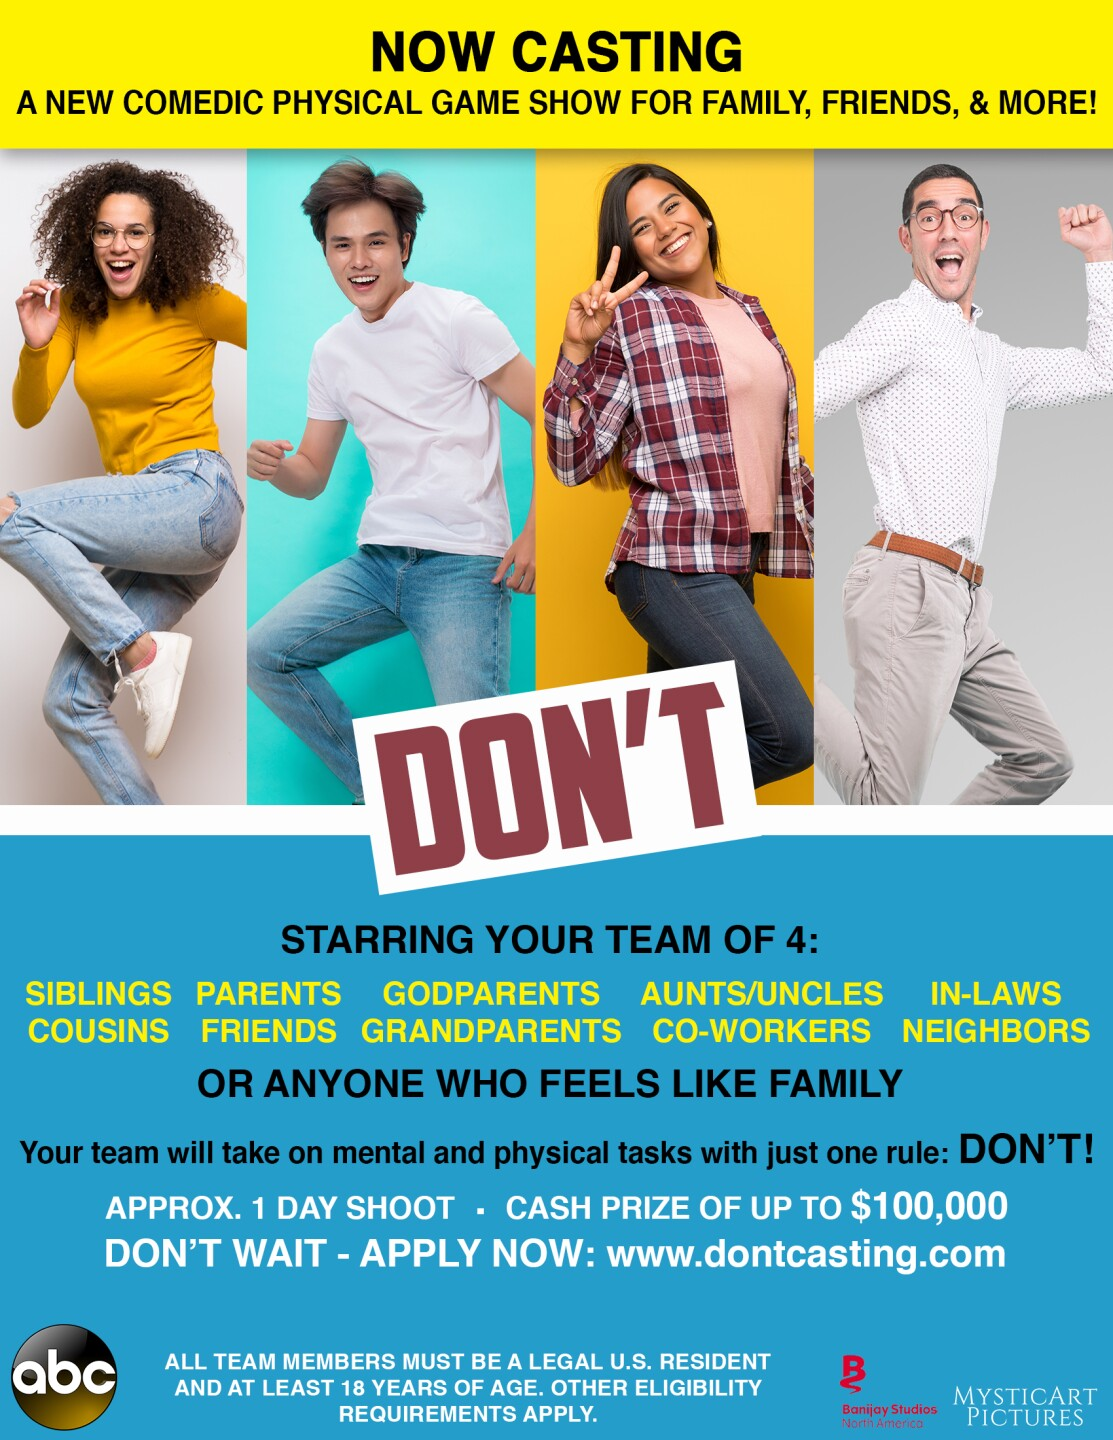 Nationwide Talent Search Underway for Series Premiere of ABC's 'Don't'